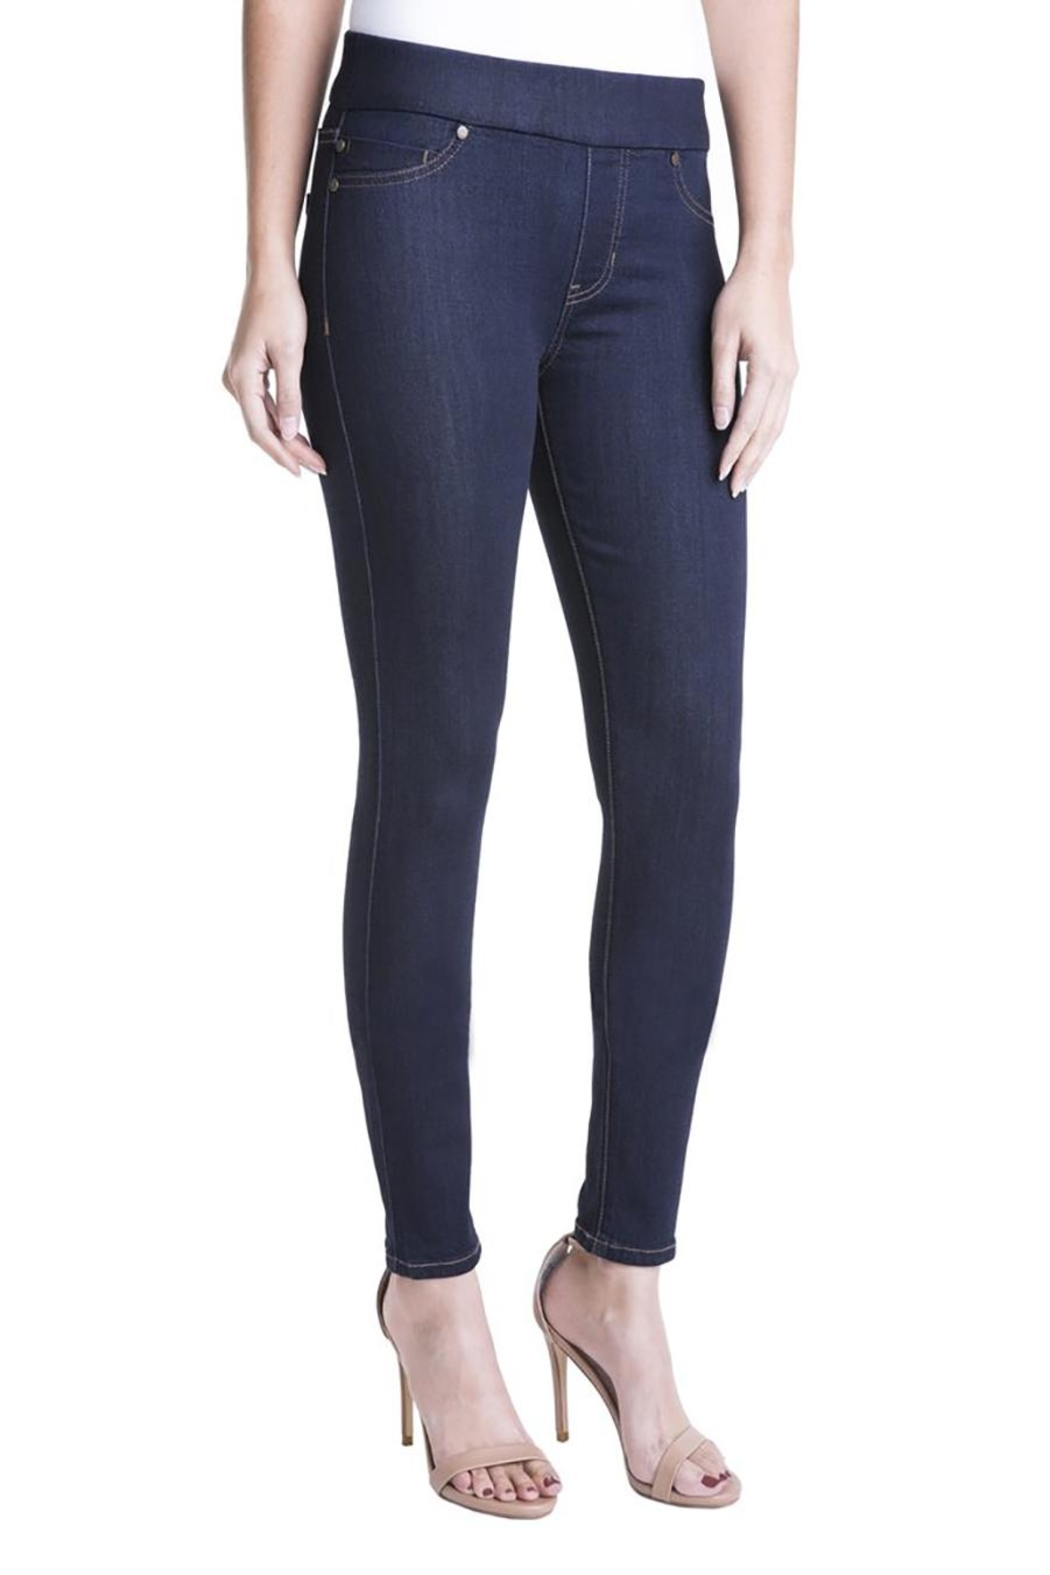 Liverpool Jeans Company Pull-On Jeans - Main Image